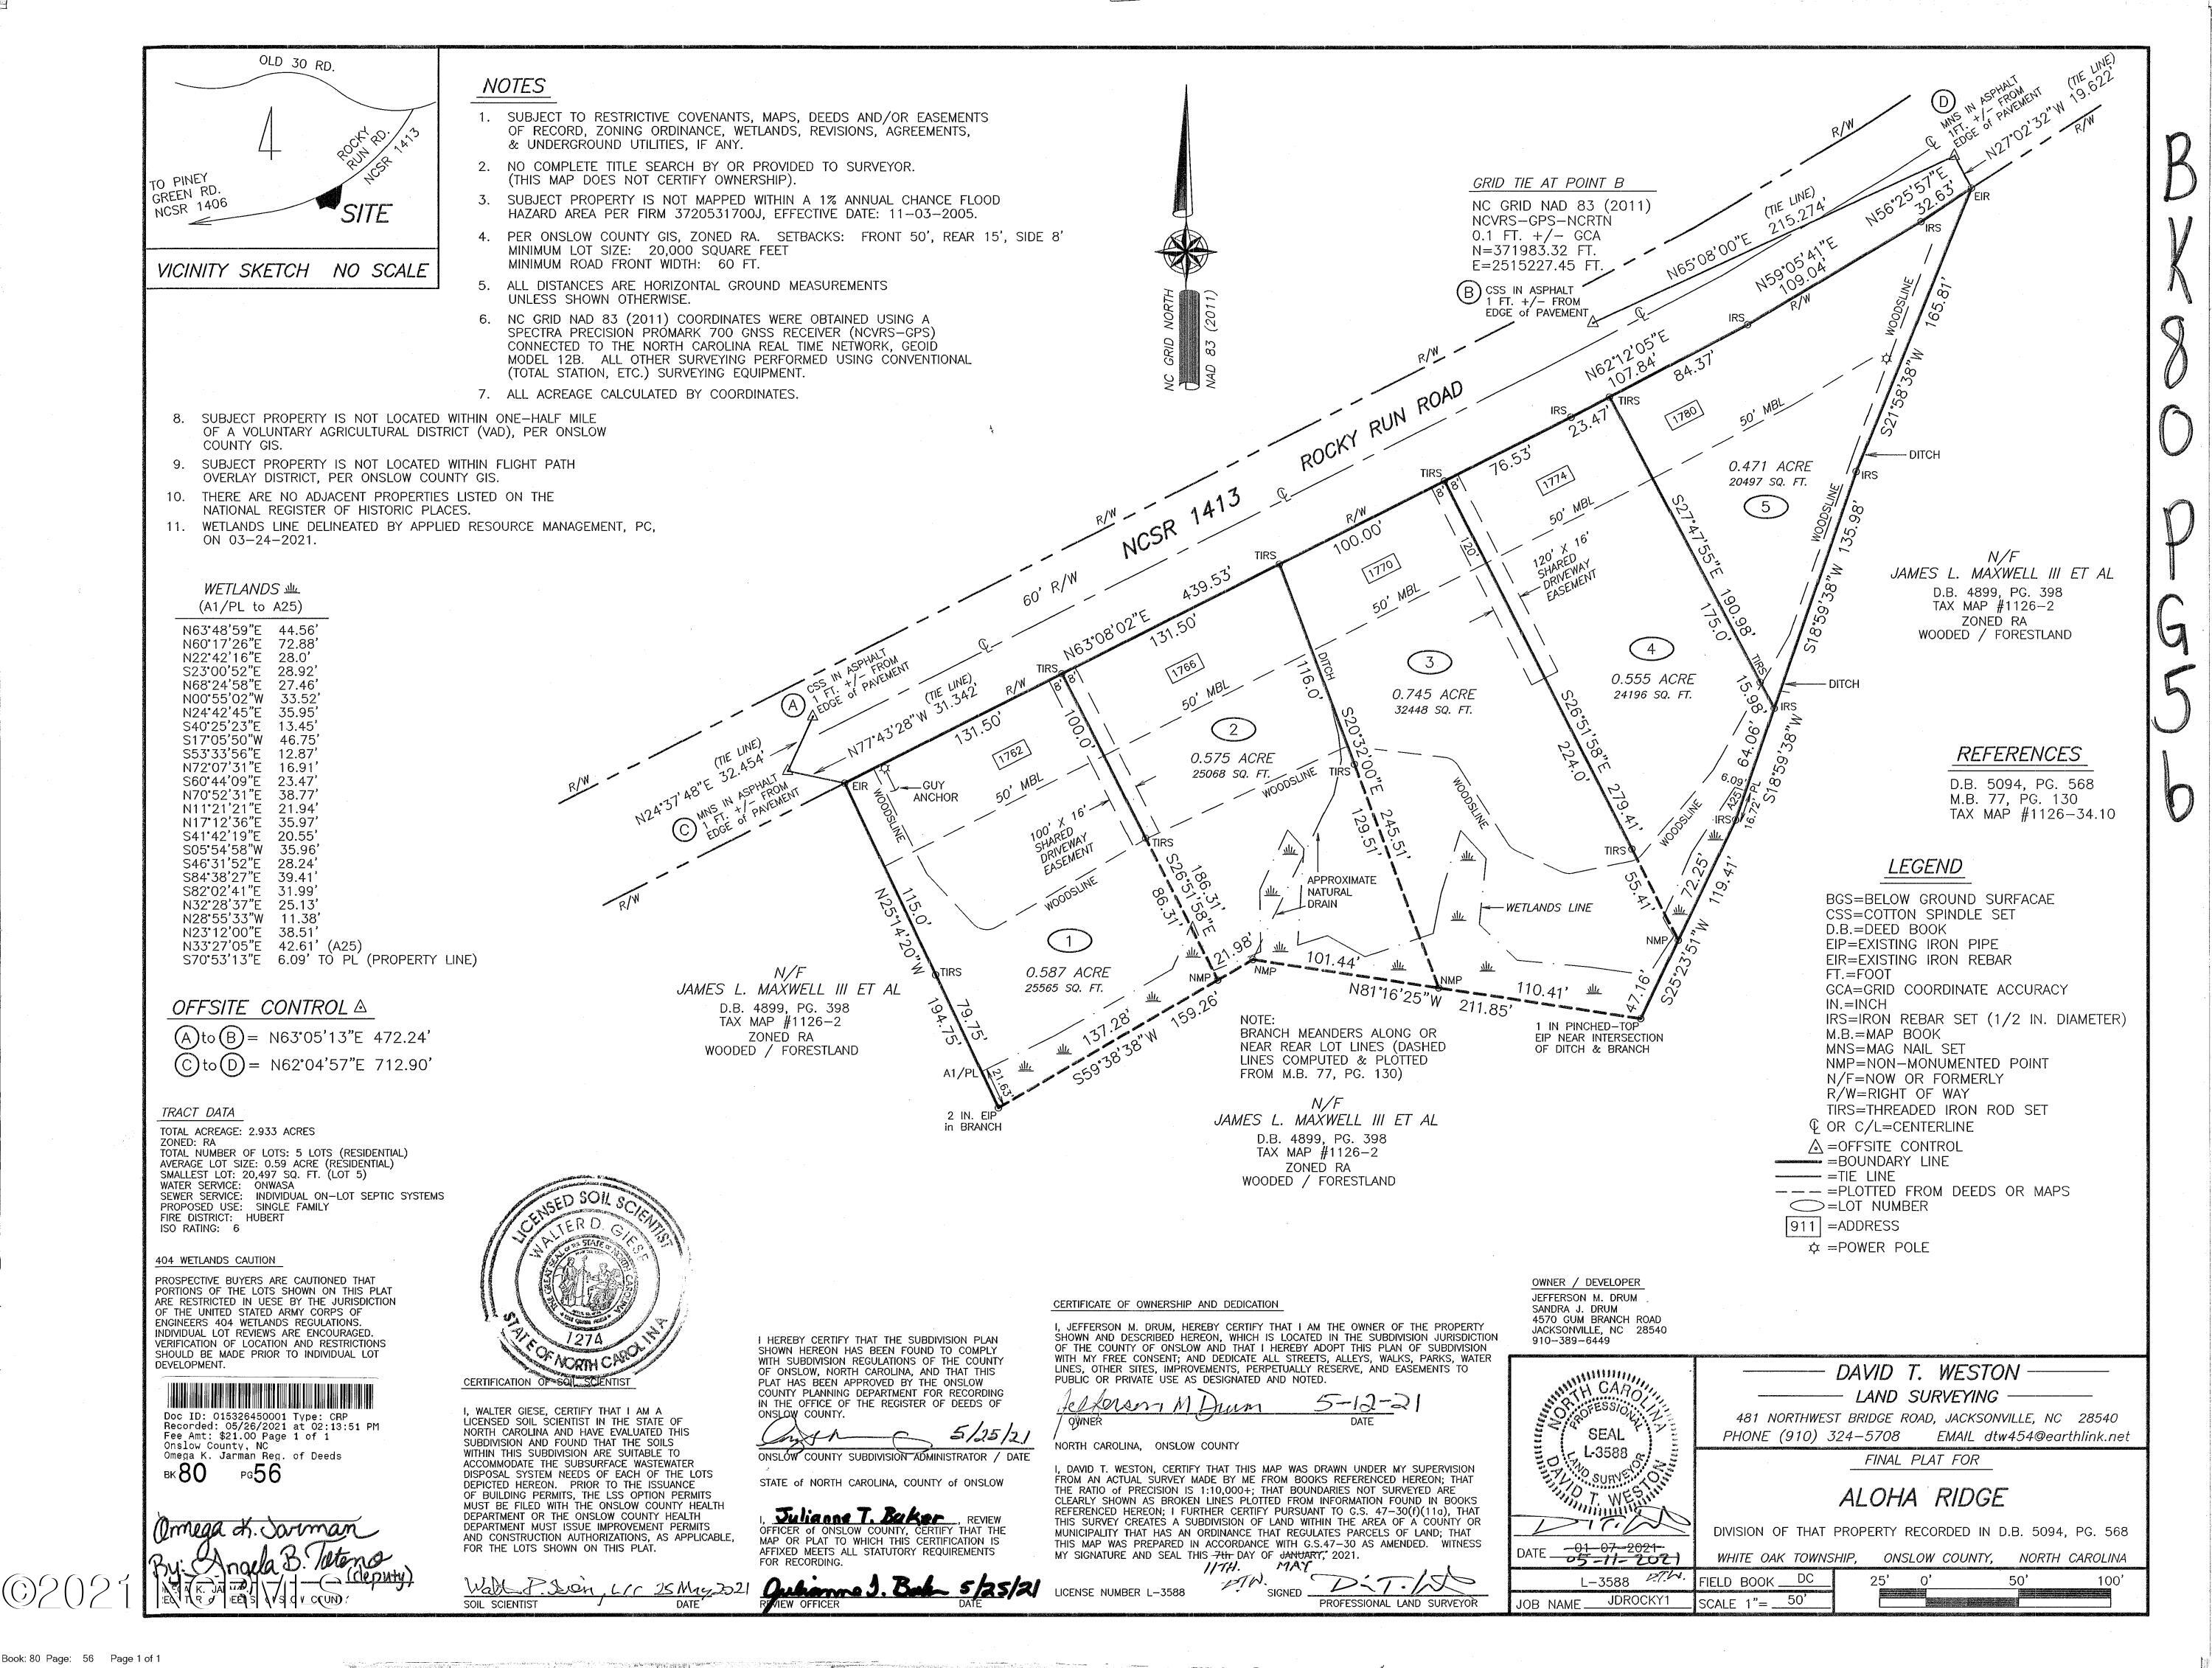 This is the perfect lot to build your dream home!